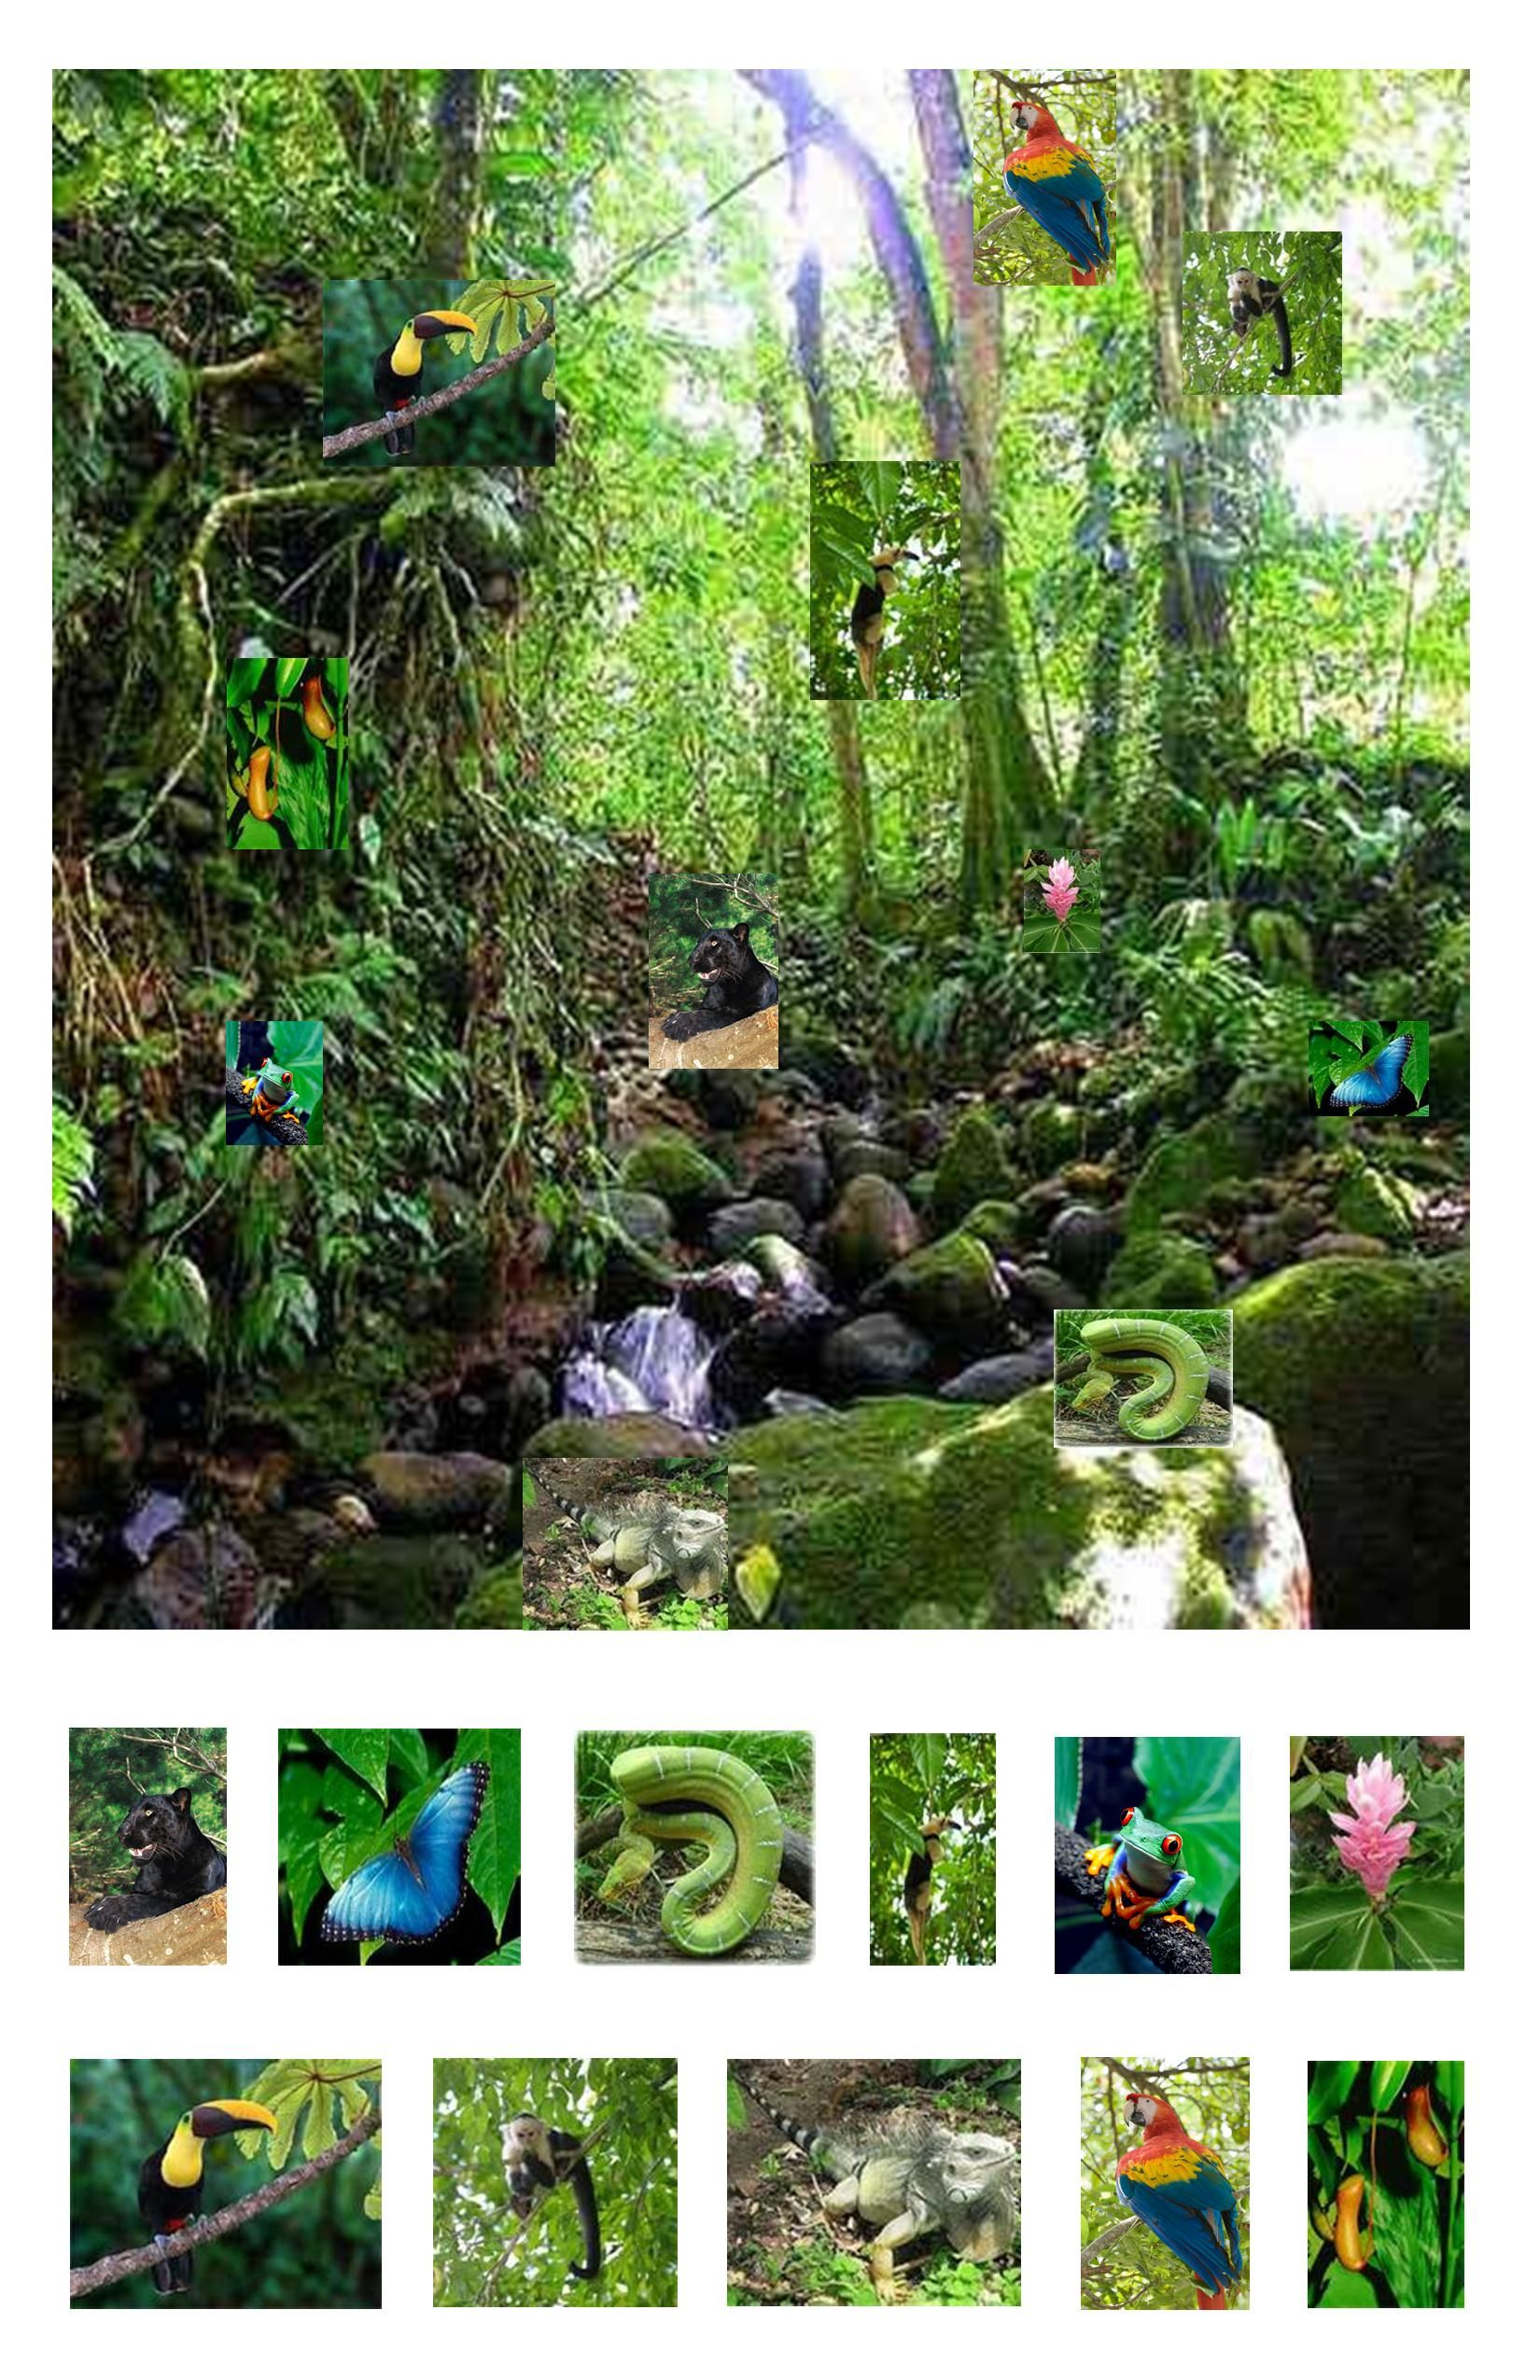 Rainforest I Spy Laminated So Items Can Be Circled With A